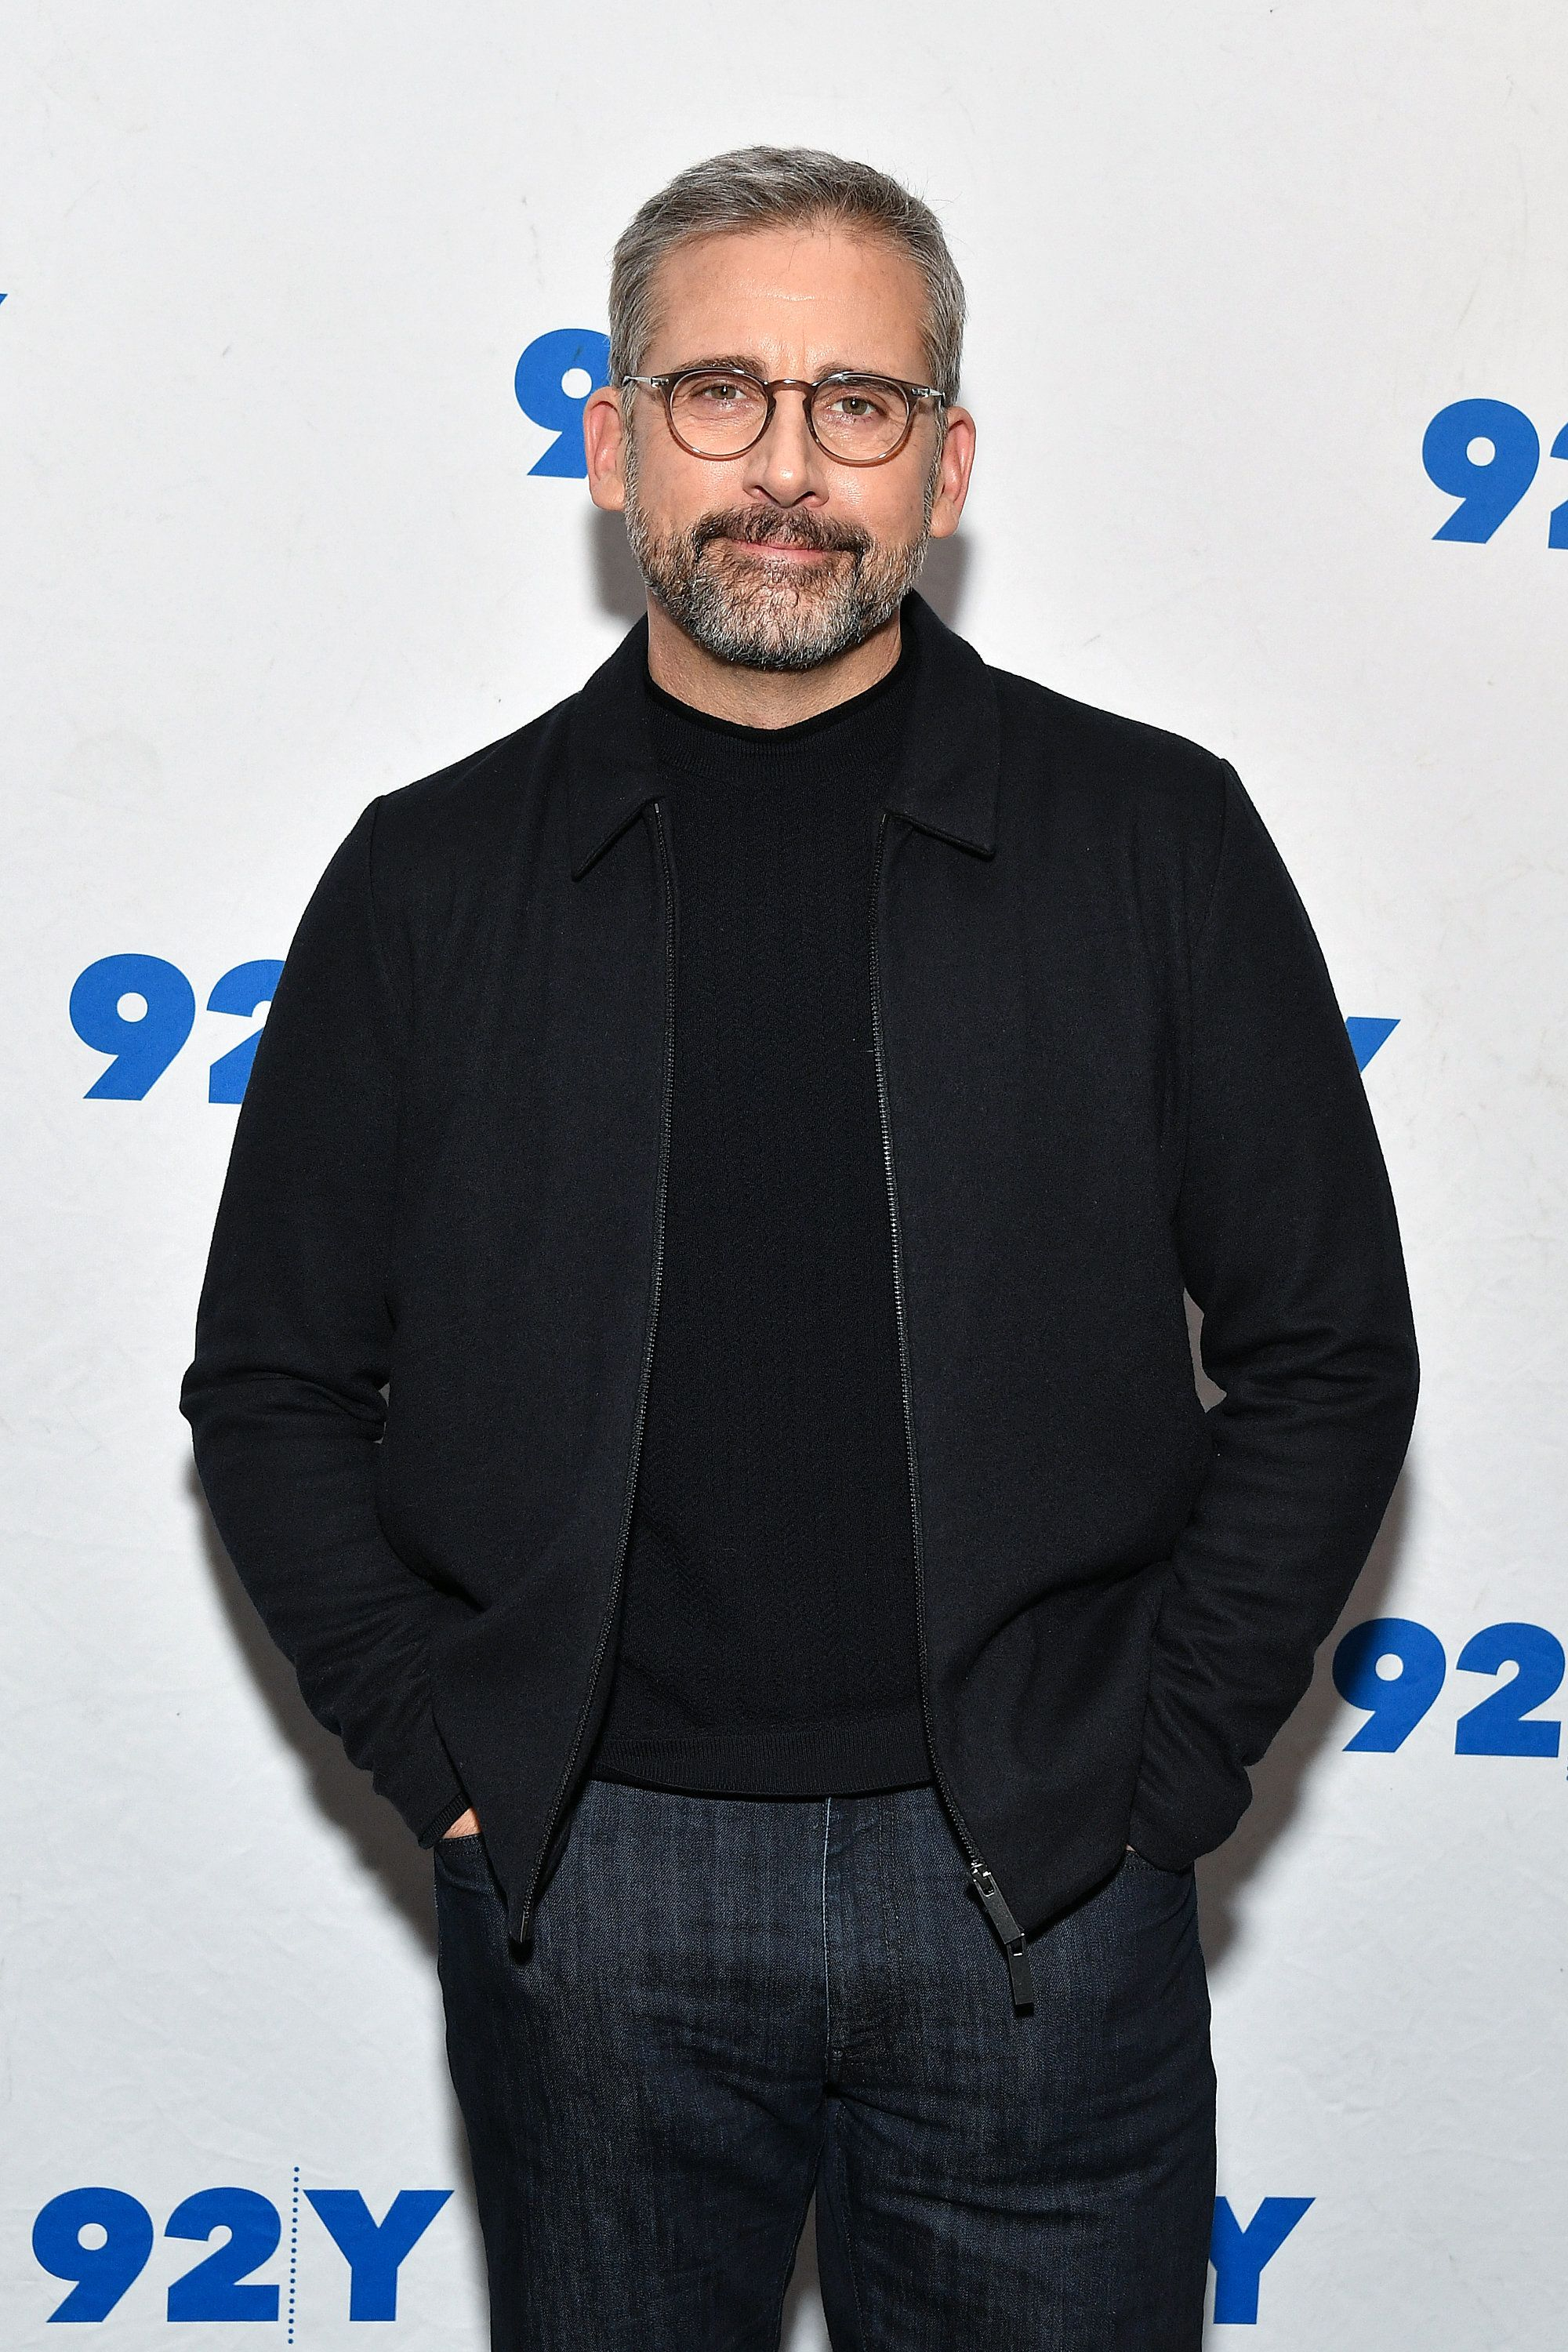 NEW YORK, NEW YORK - DECEMBER 20:  Steve Carell attends the 'Welcome to Marwen' Screening & Conversation with Steve Carell at 92nd Street Y on December 20, 2018 in New York City. (Photo by Dia Dipasupil/Getty Images)